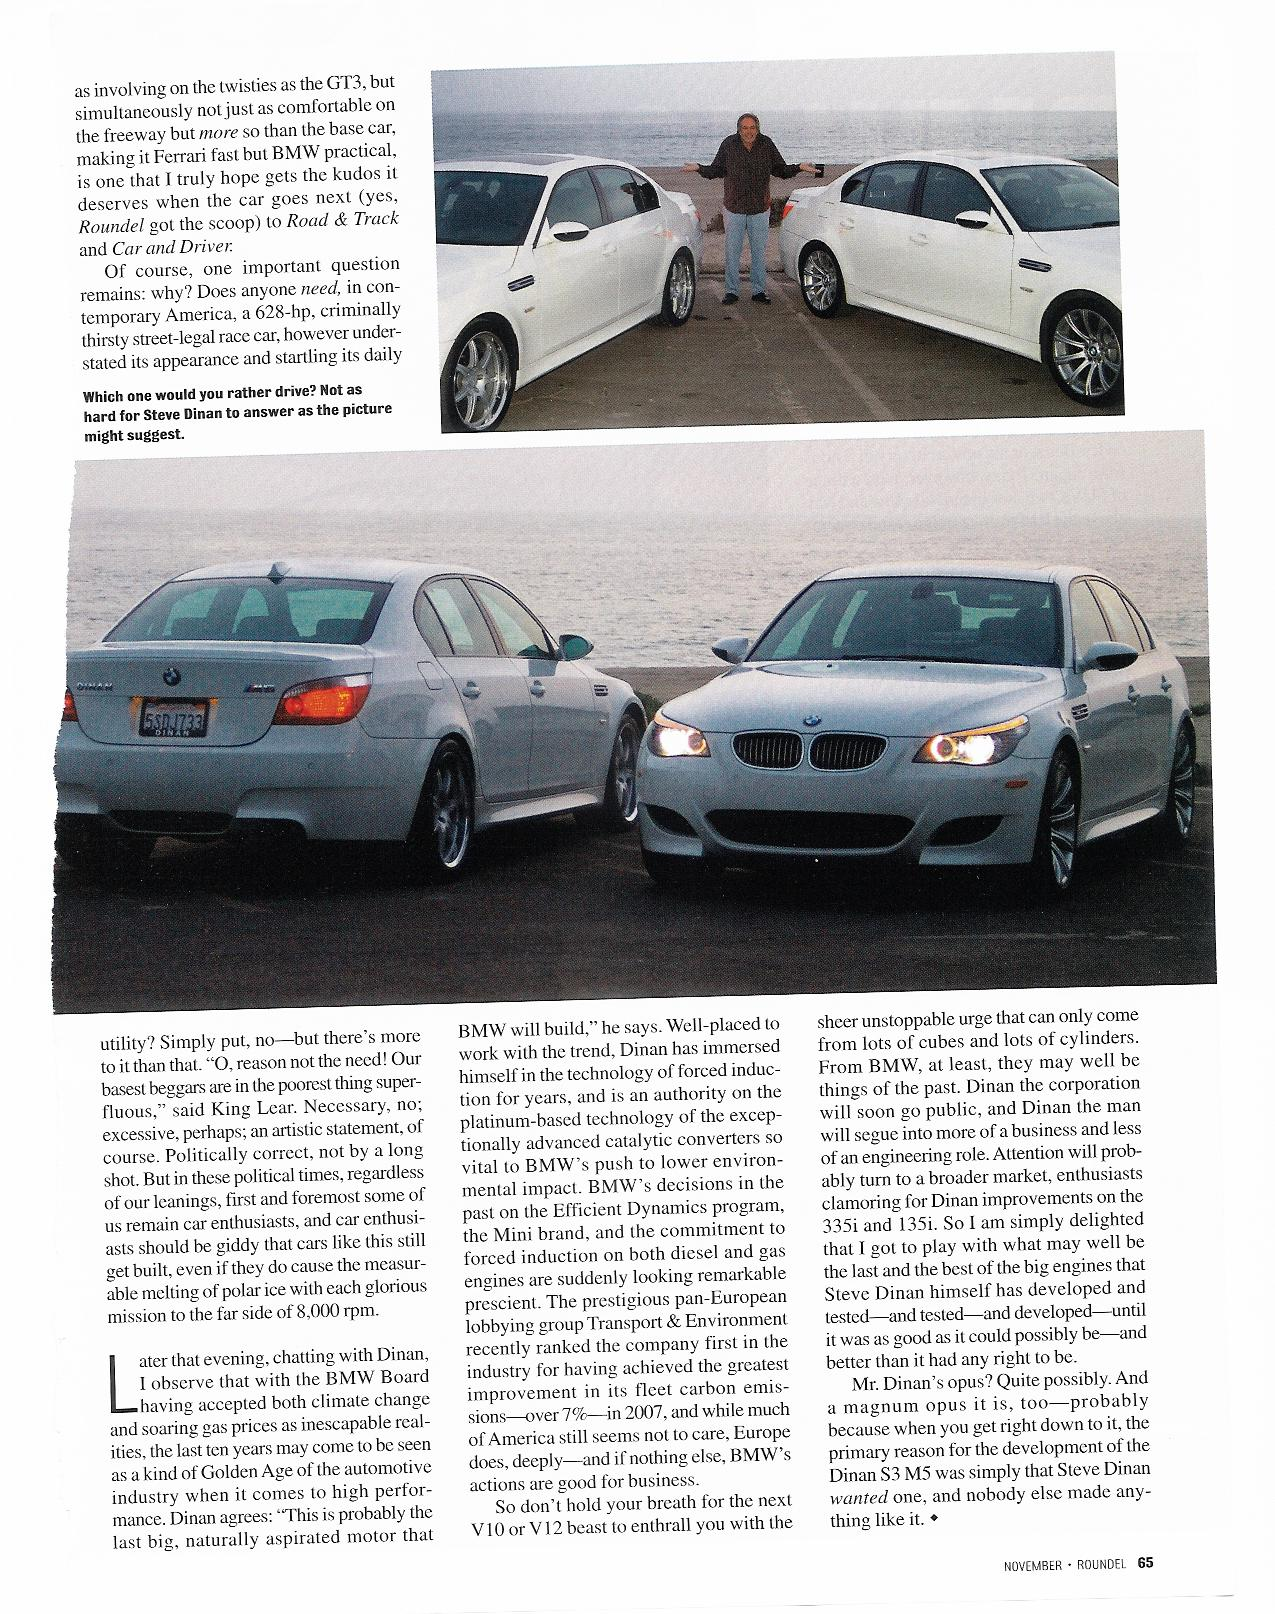 Stock E60 M5 owner evaluates Dinan S3 (Roundel Article)-roundel-article-dinan-e60-m5-s3-008.jpg